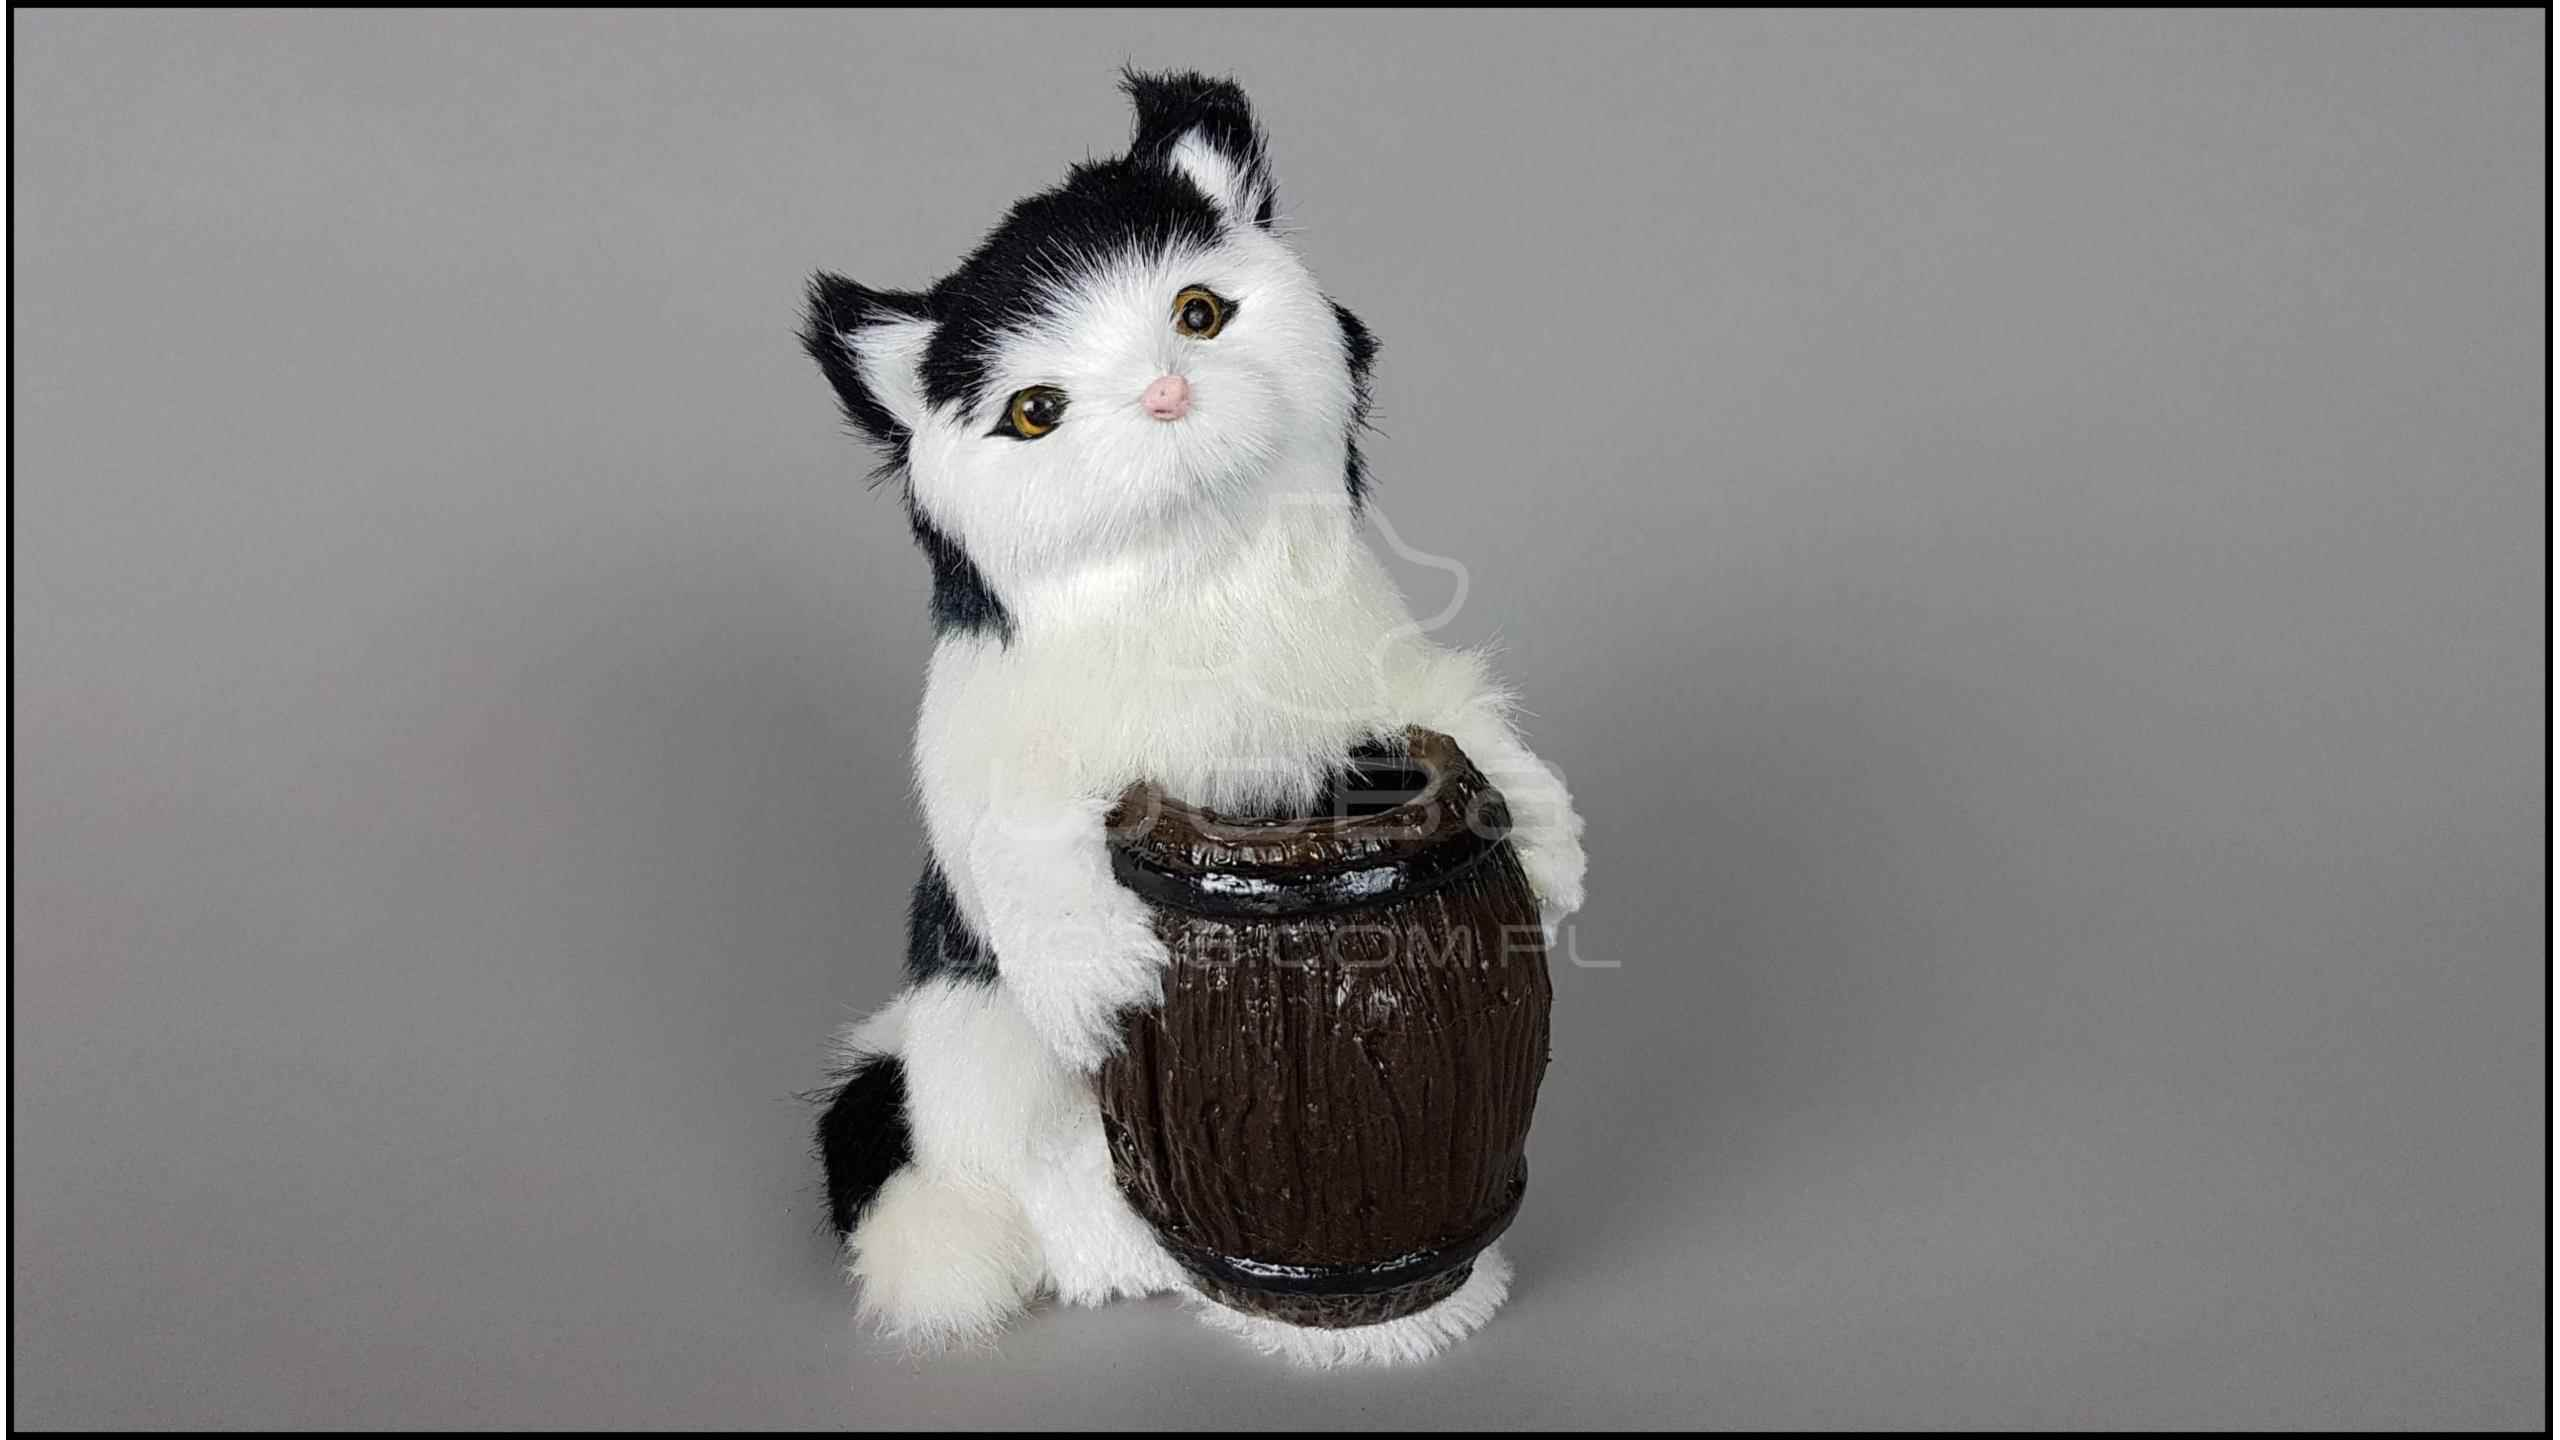 Cat with a barrel - Black & White